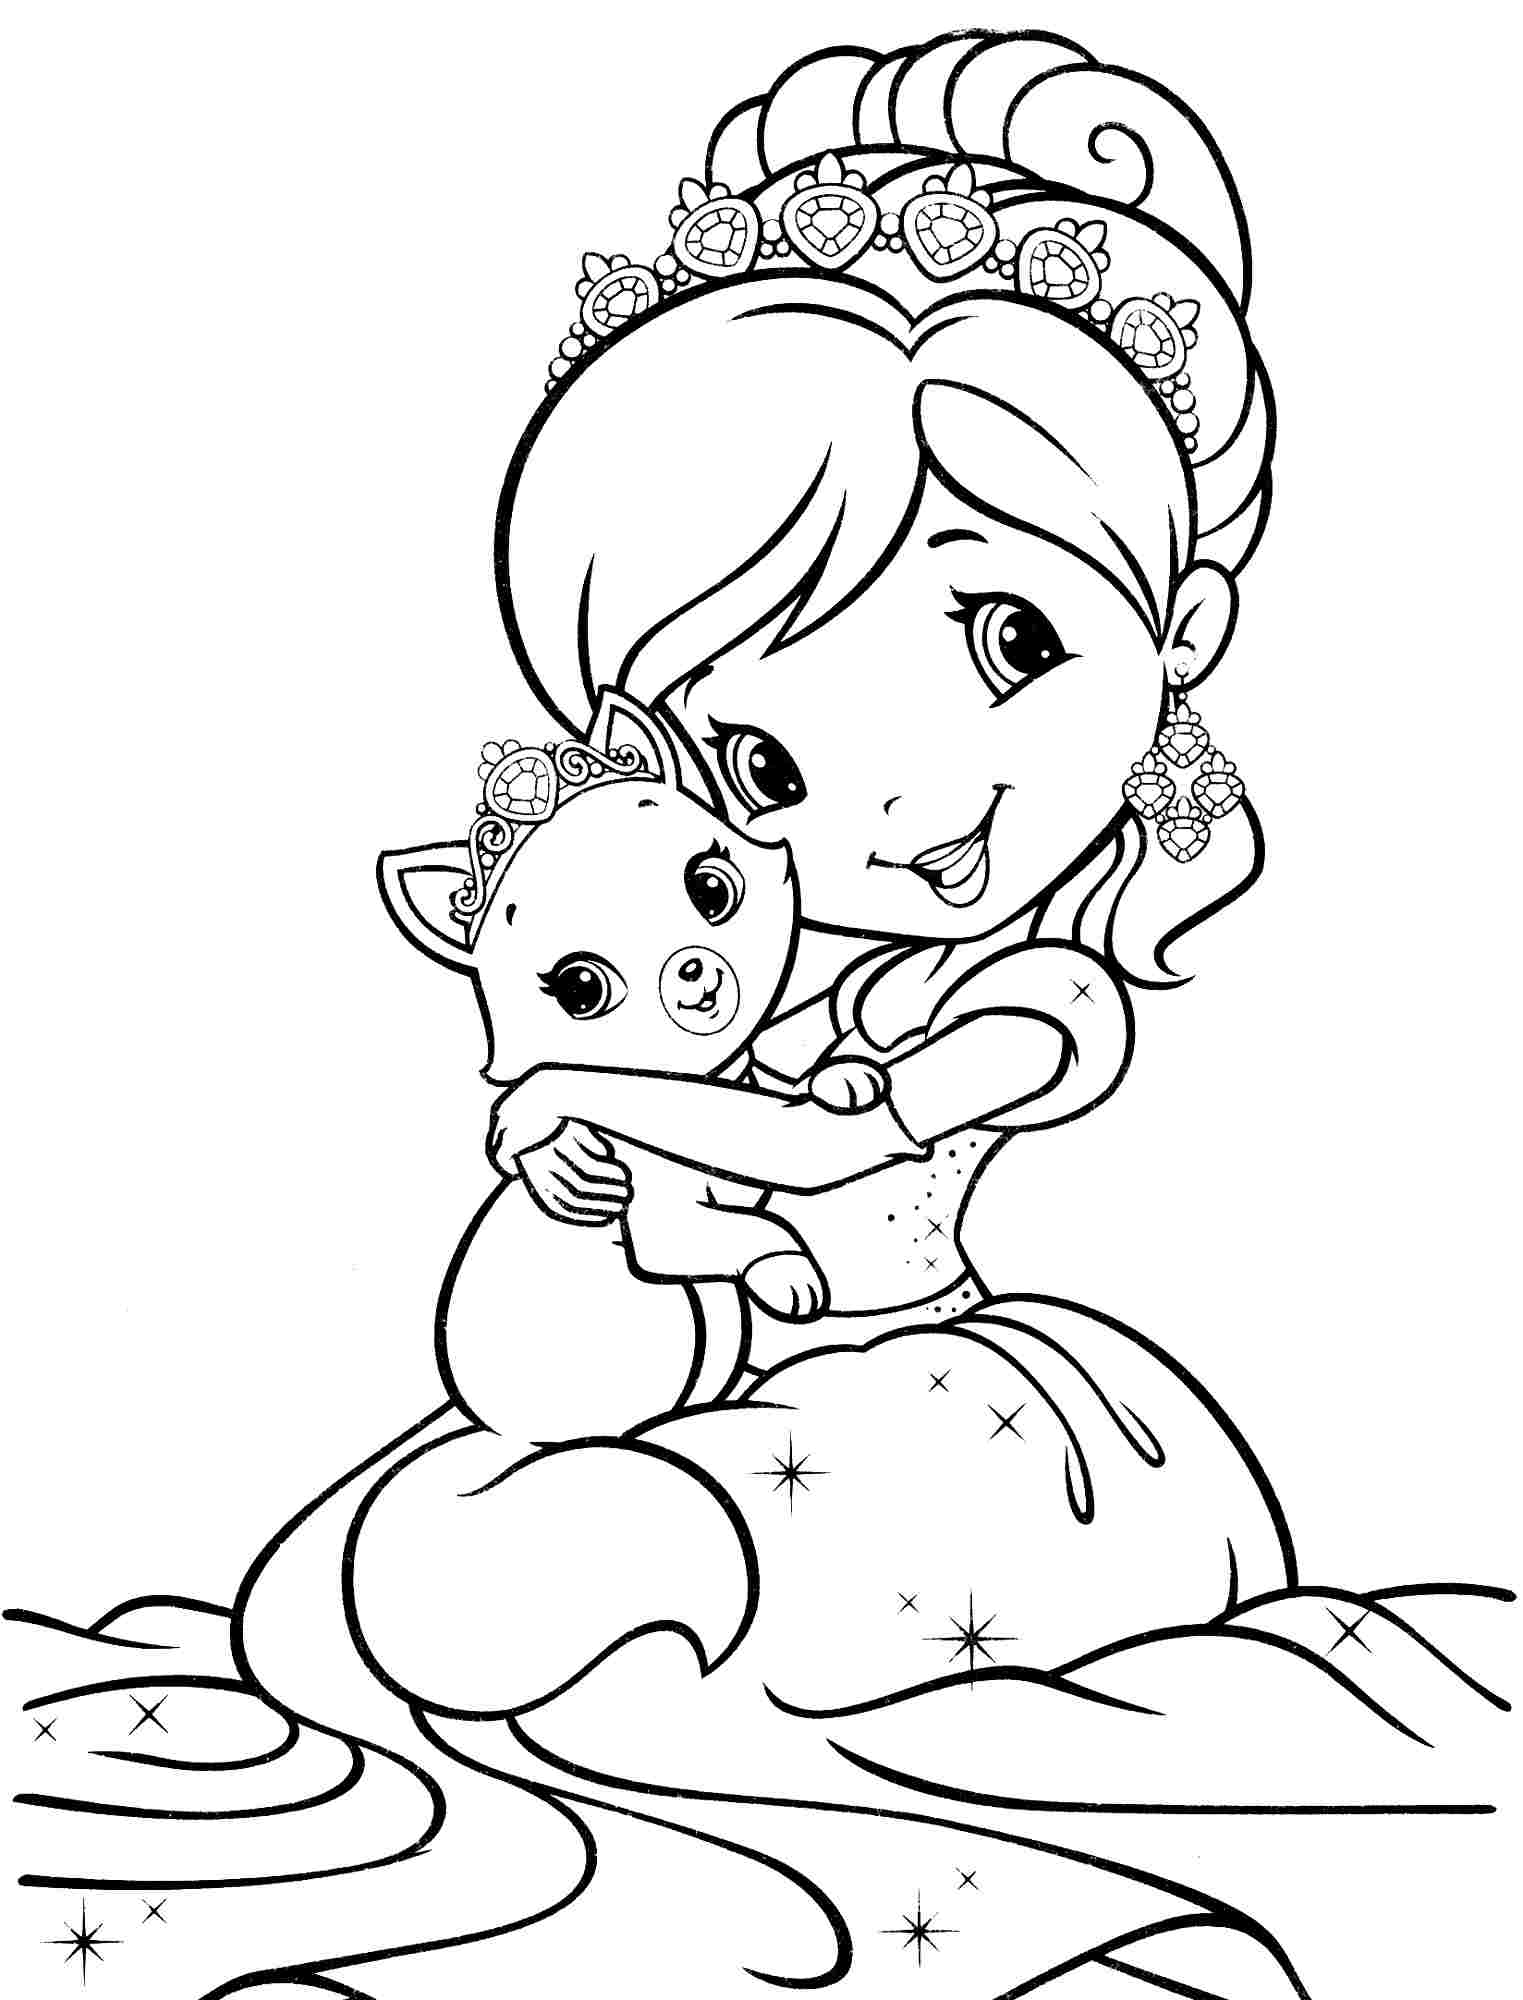 Strawberry Shortcake And All Friends Coloring Pages Coloring Home